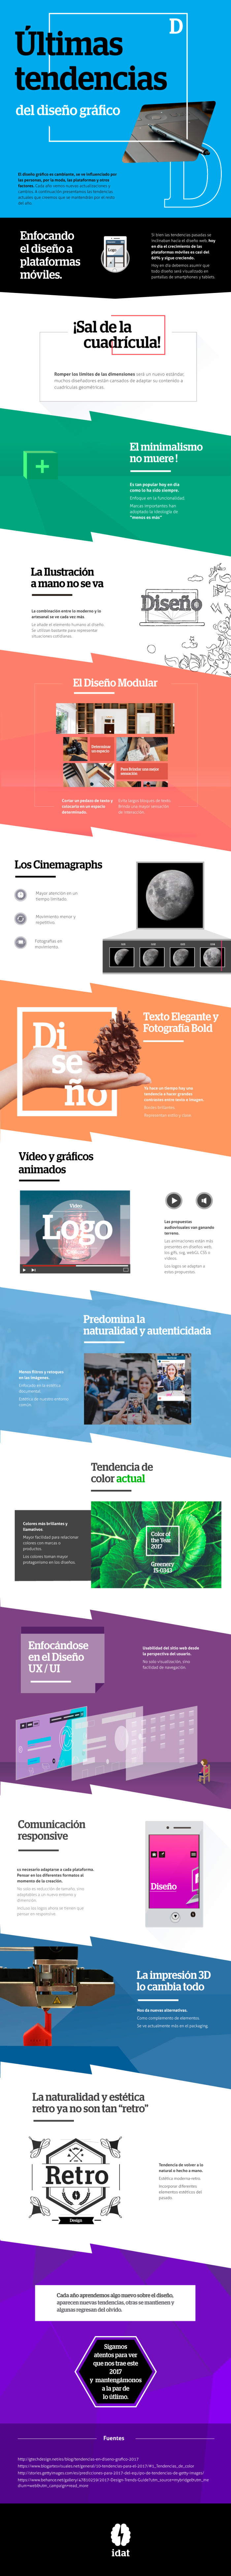 tendencias-diseno-grafico-idat-marketing-peru-marketerospe-carlos-mellado-g-blogger-mercadologo-marketero-2